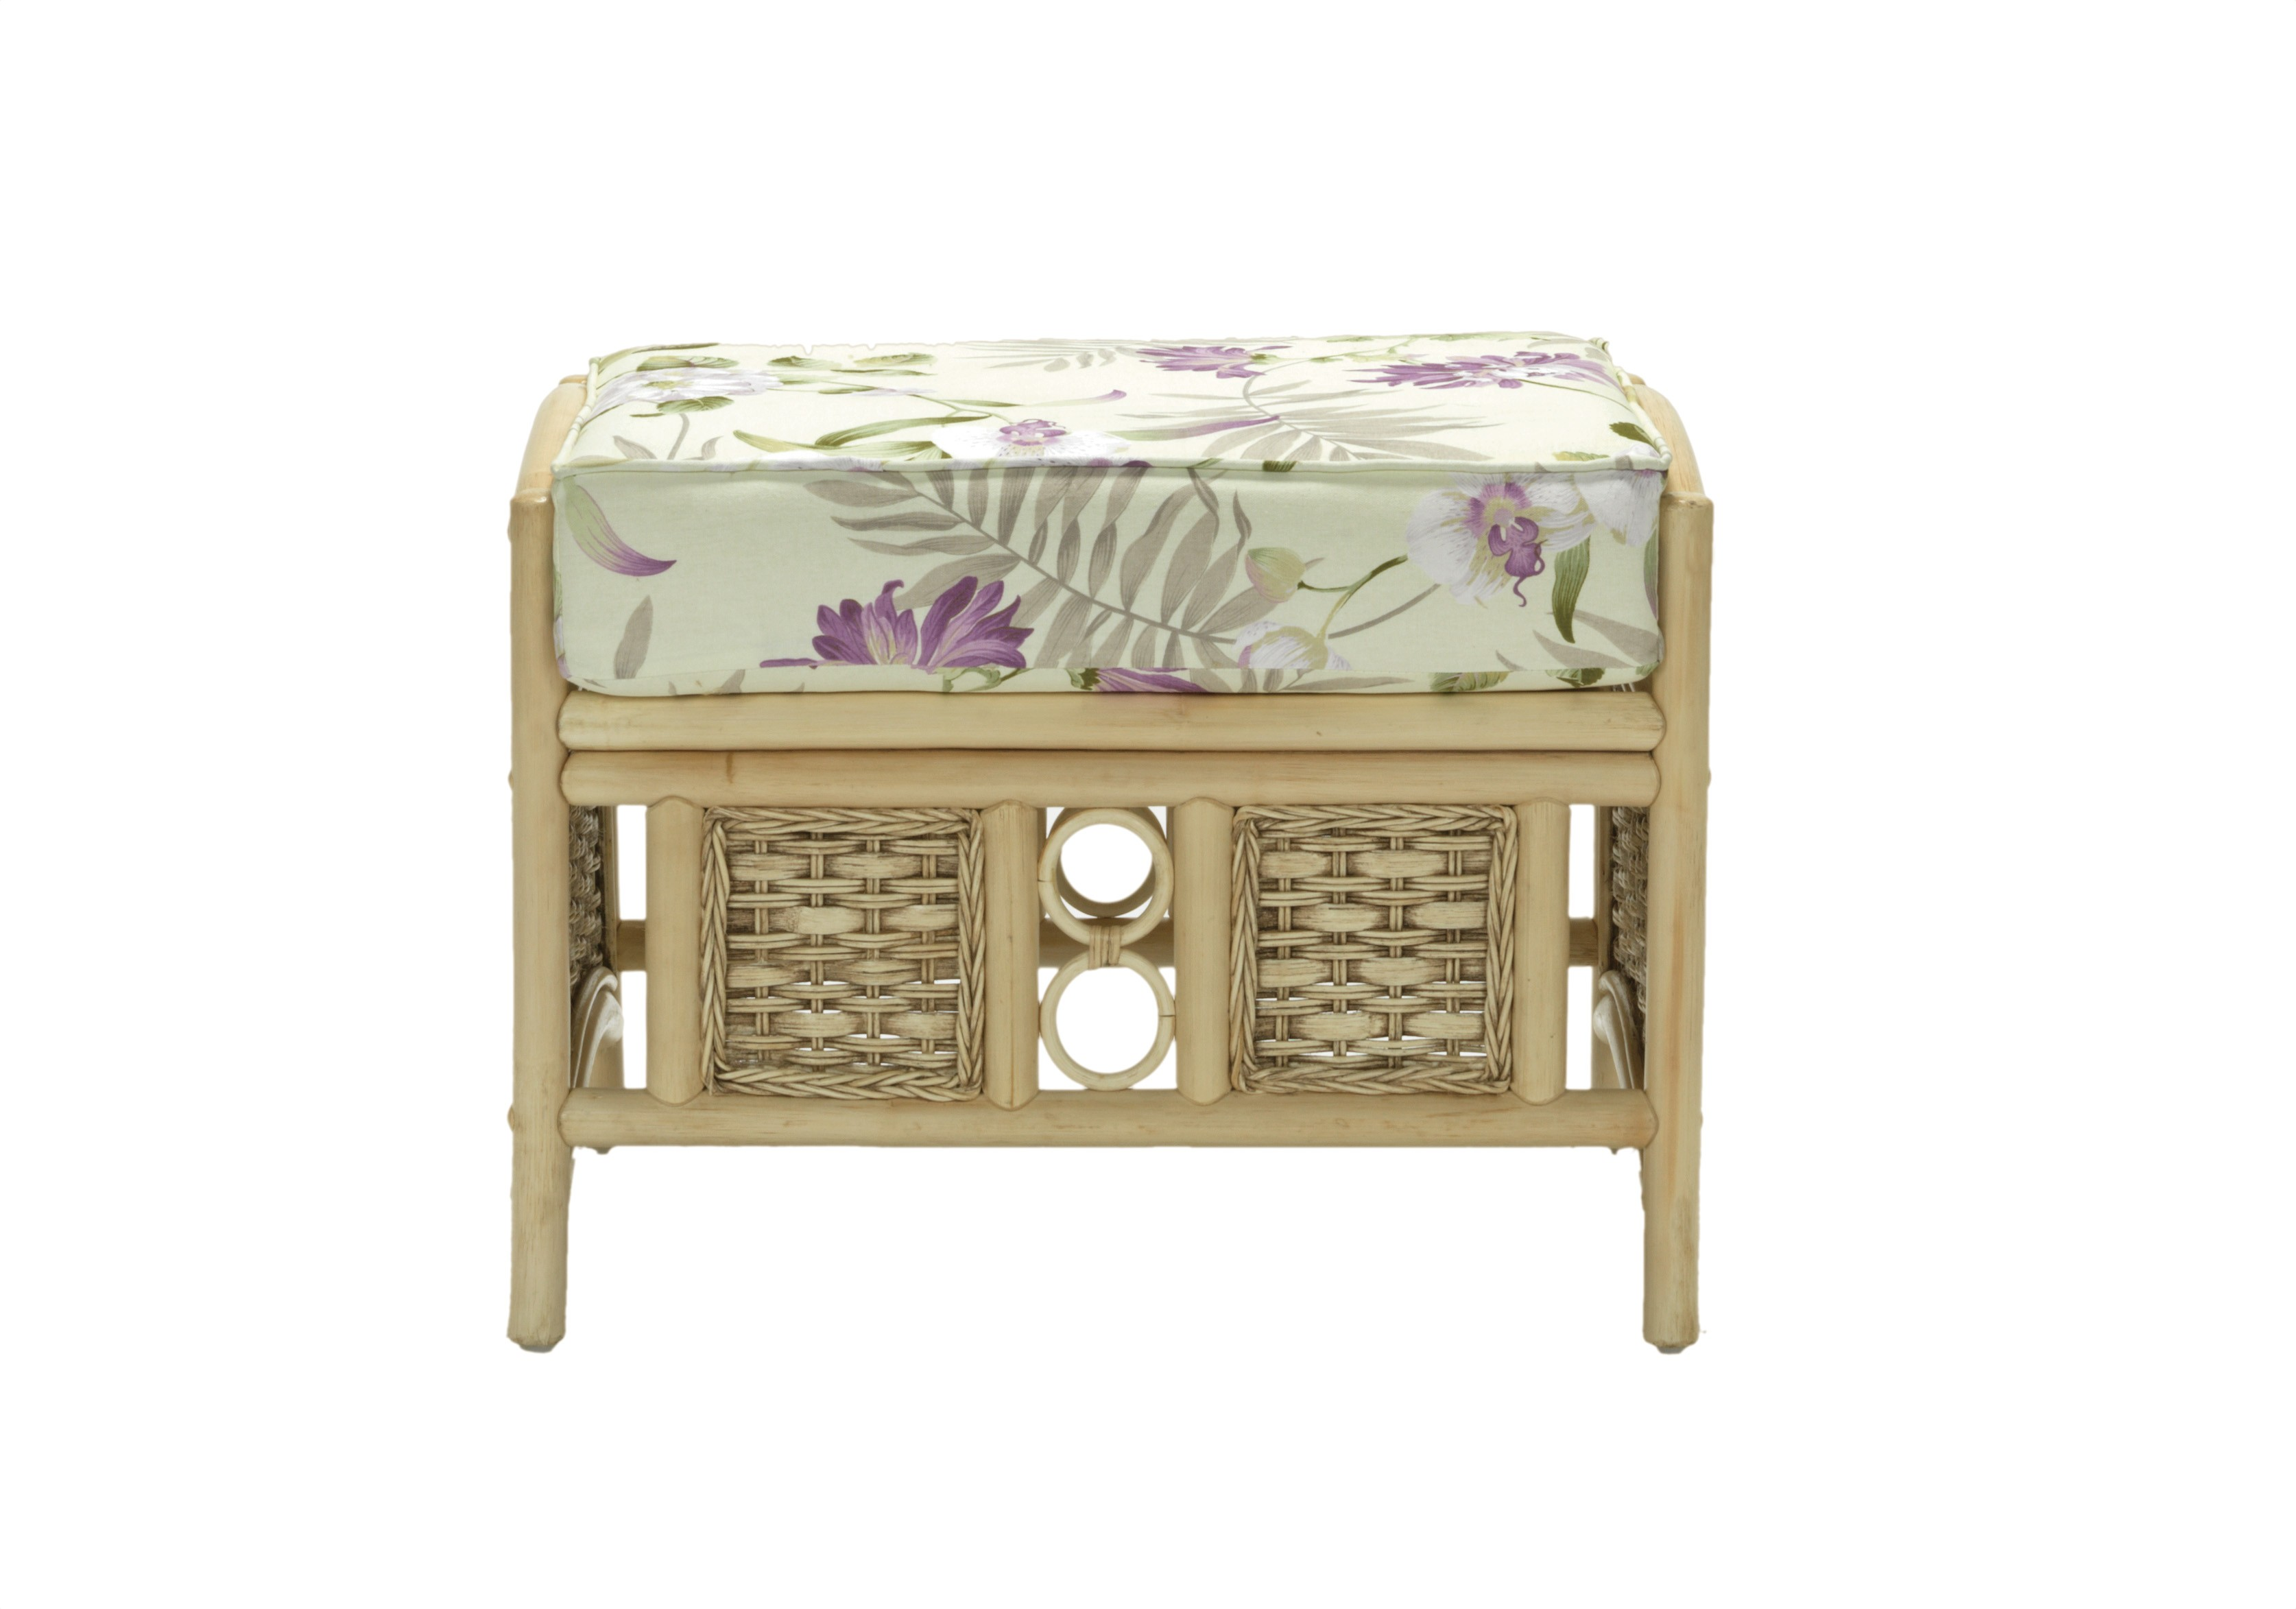 Desser Vale Footstool and Cushion